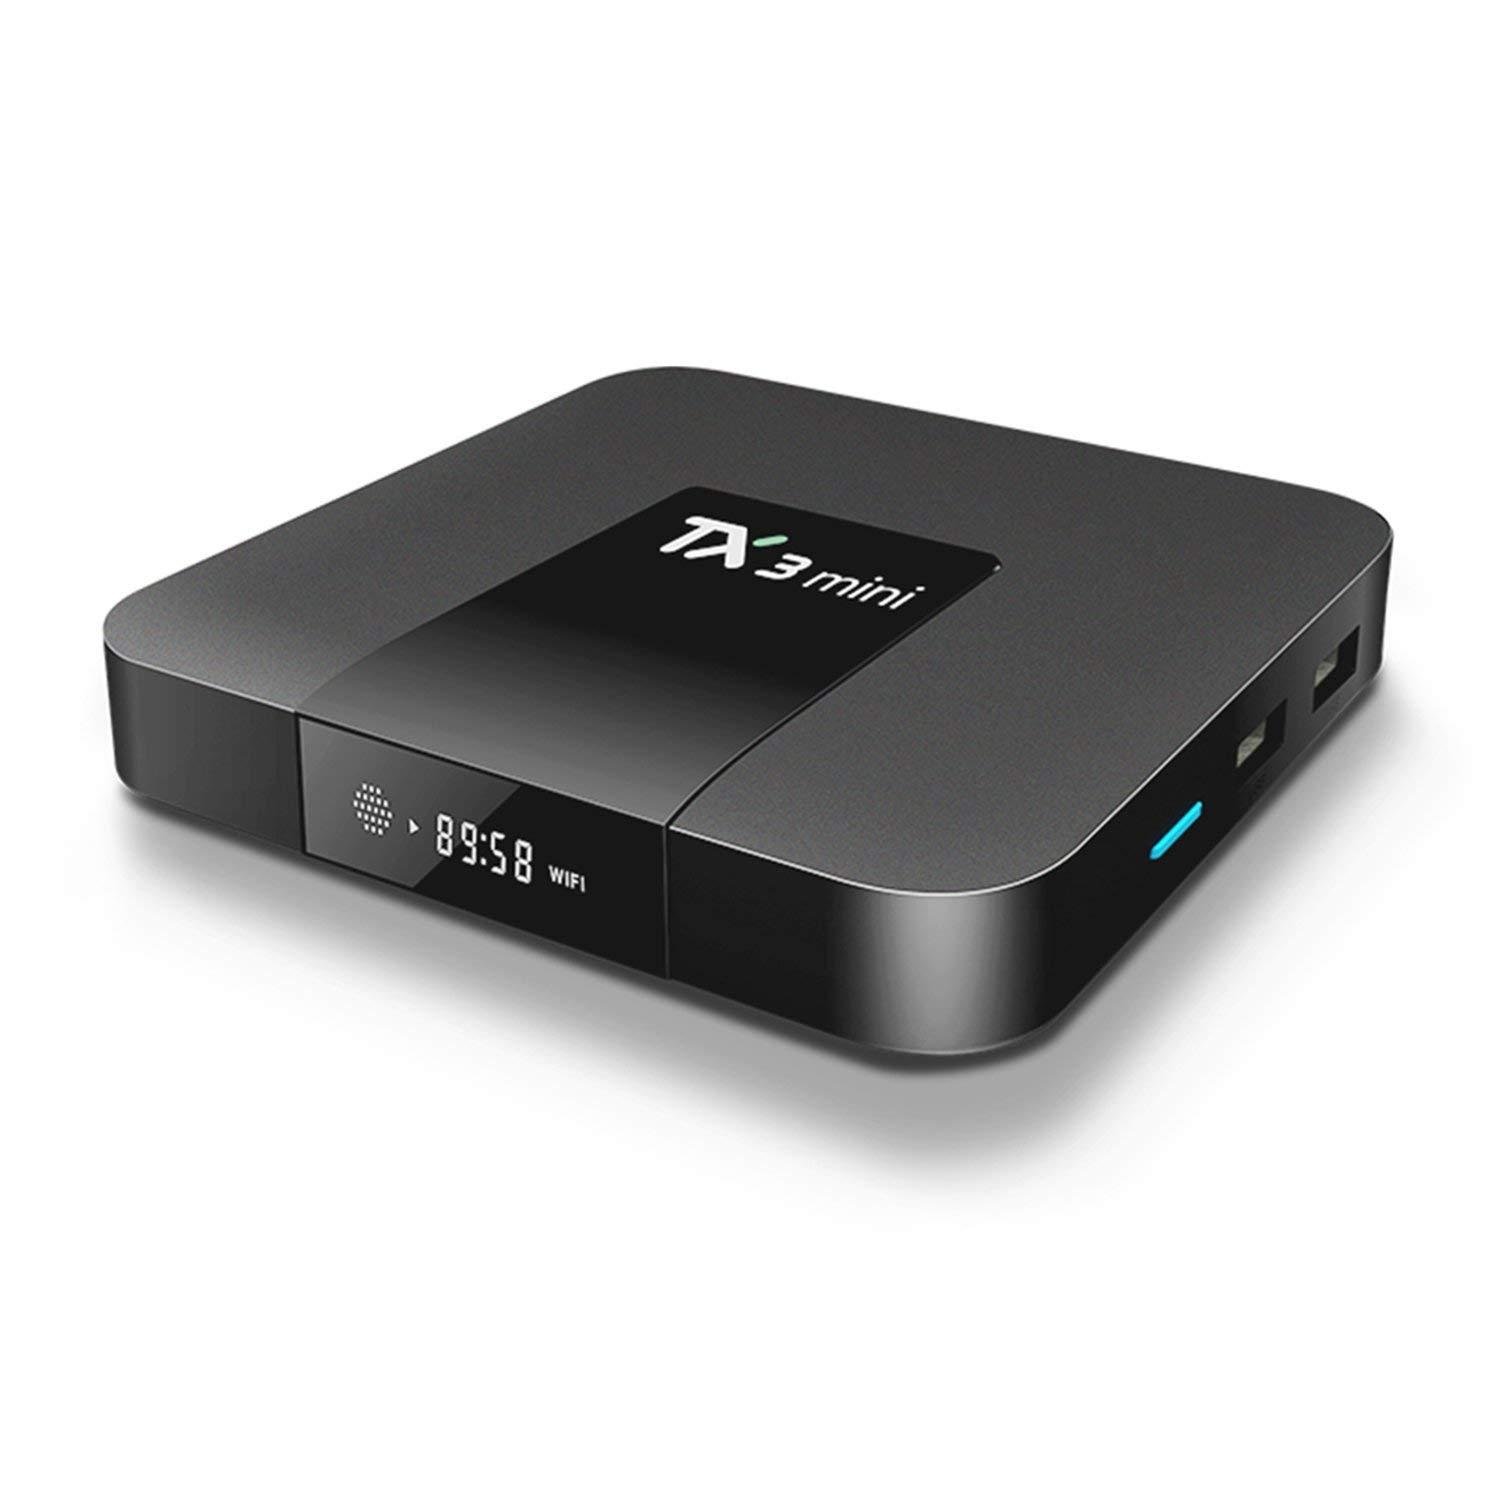 Buy Gadget Plus shop-gadgets-streaming-media-players at Best